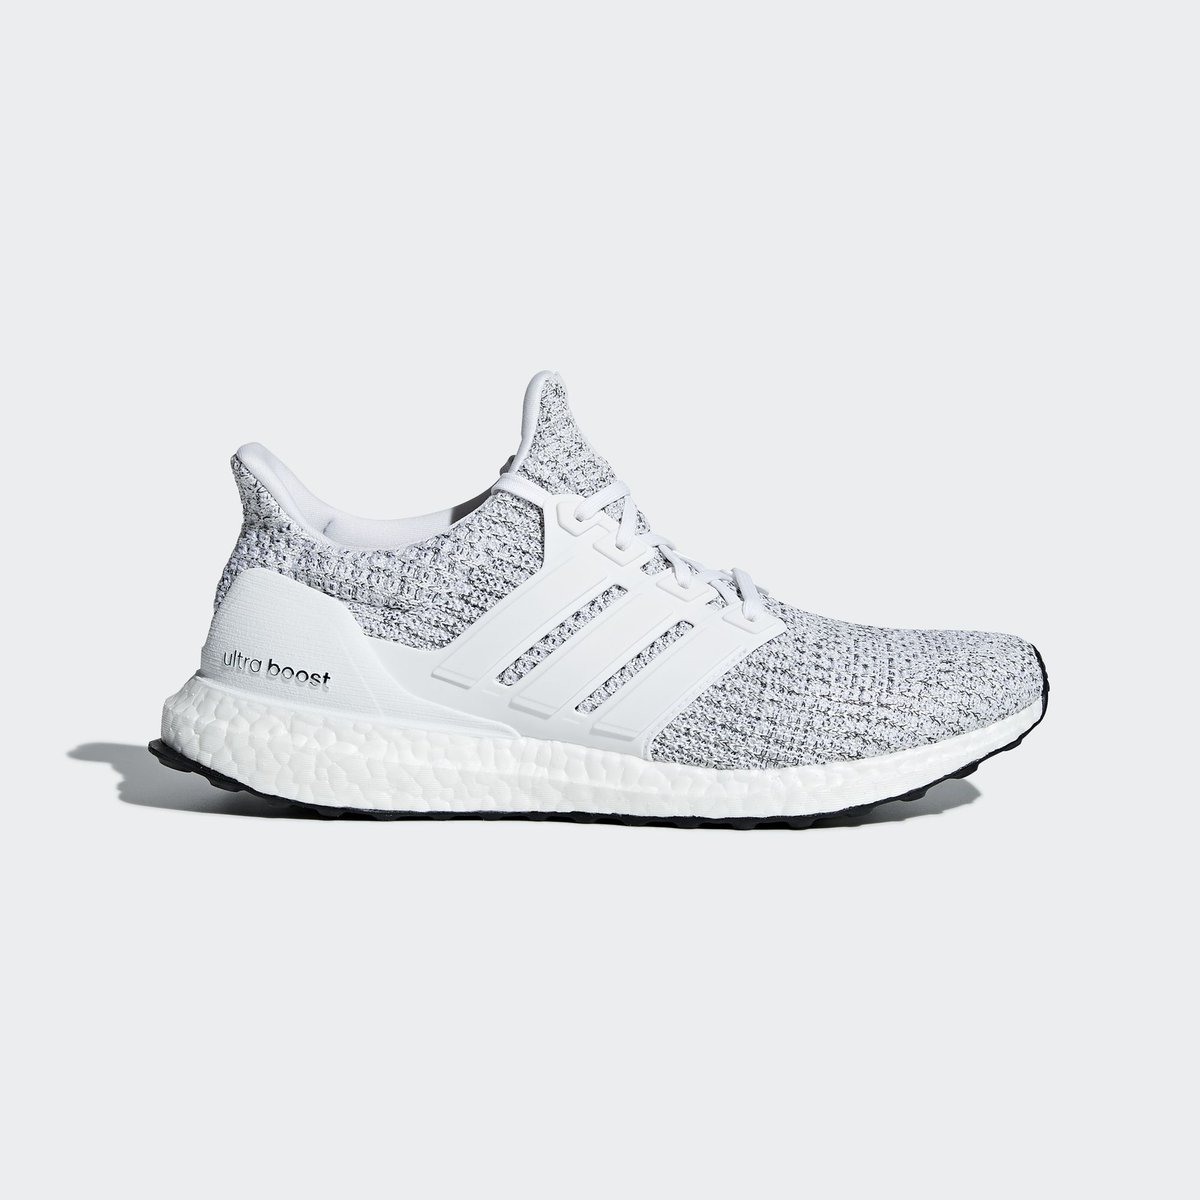 Bed669bc40a4e Adidas Ultra Boost 4 0 Releasing In Legend